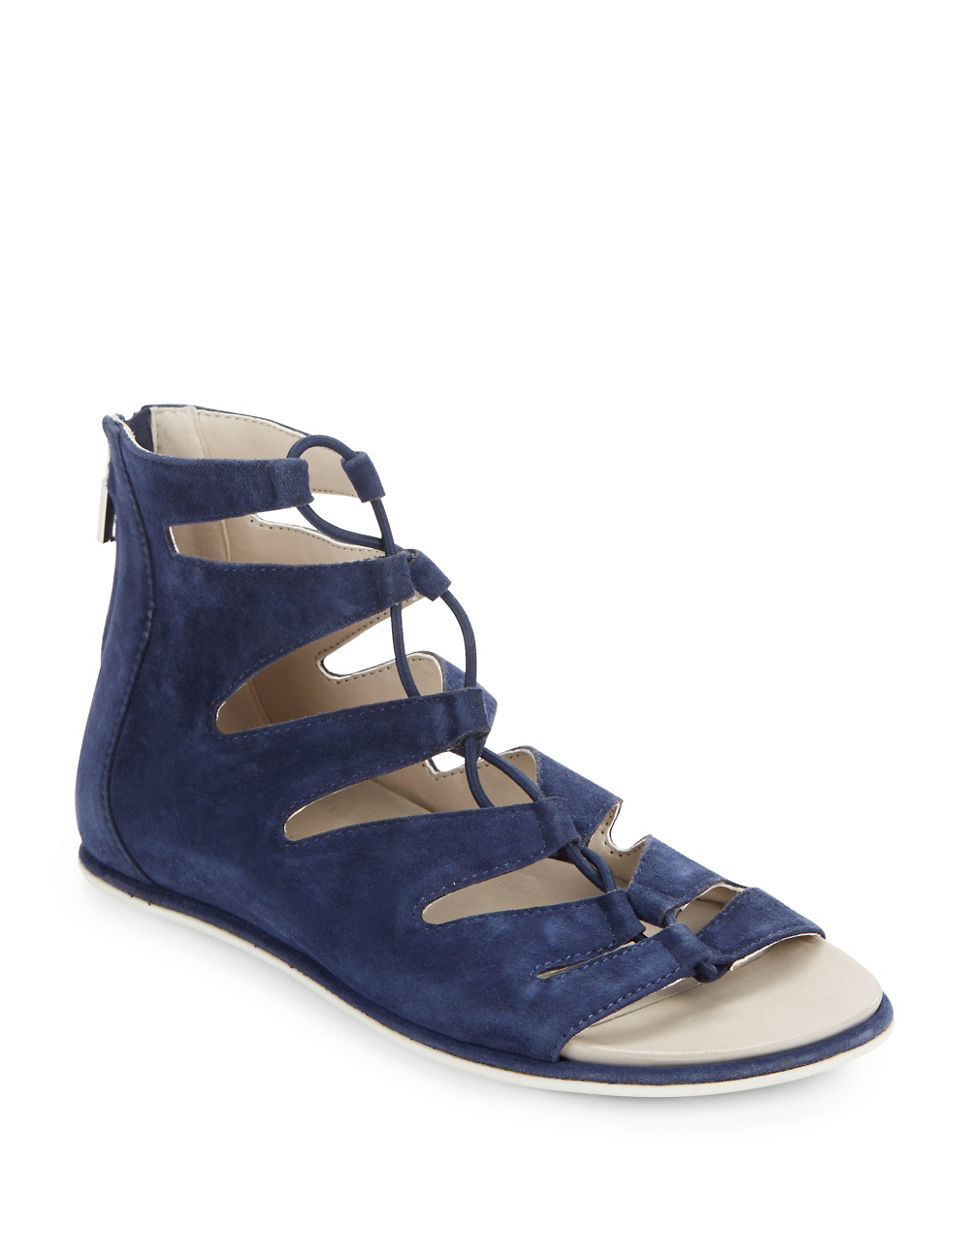 Naturalizer Navy Blue Shoes